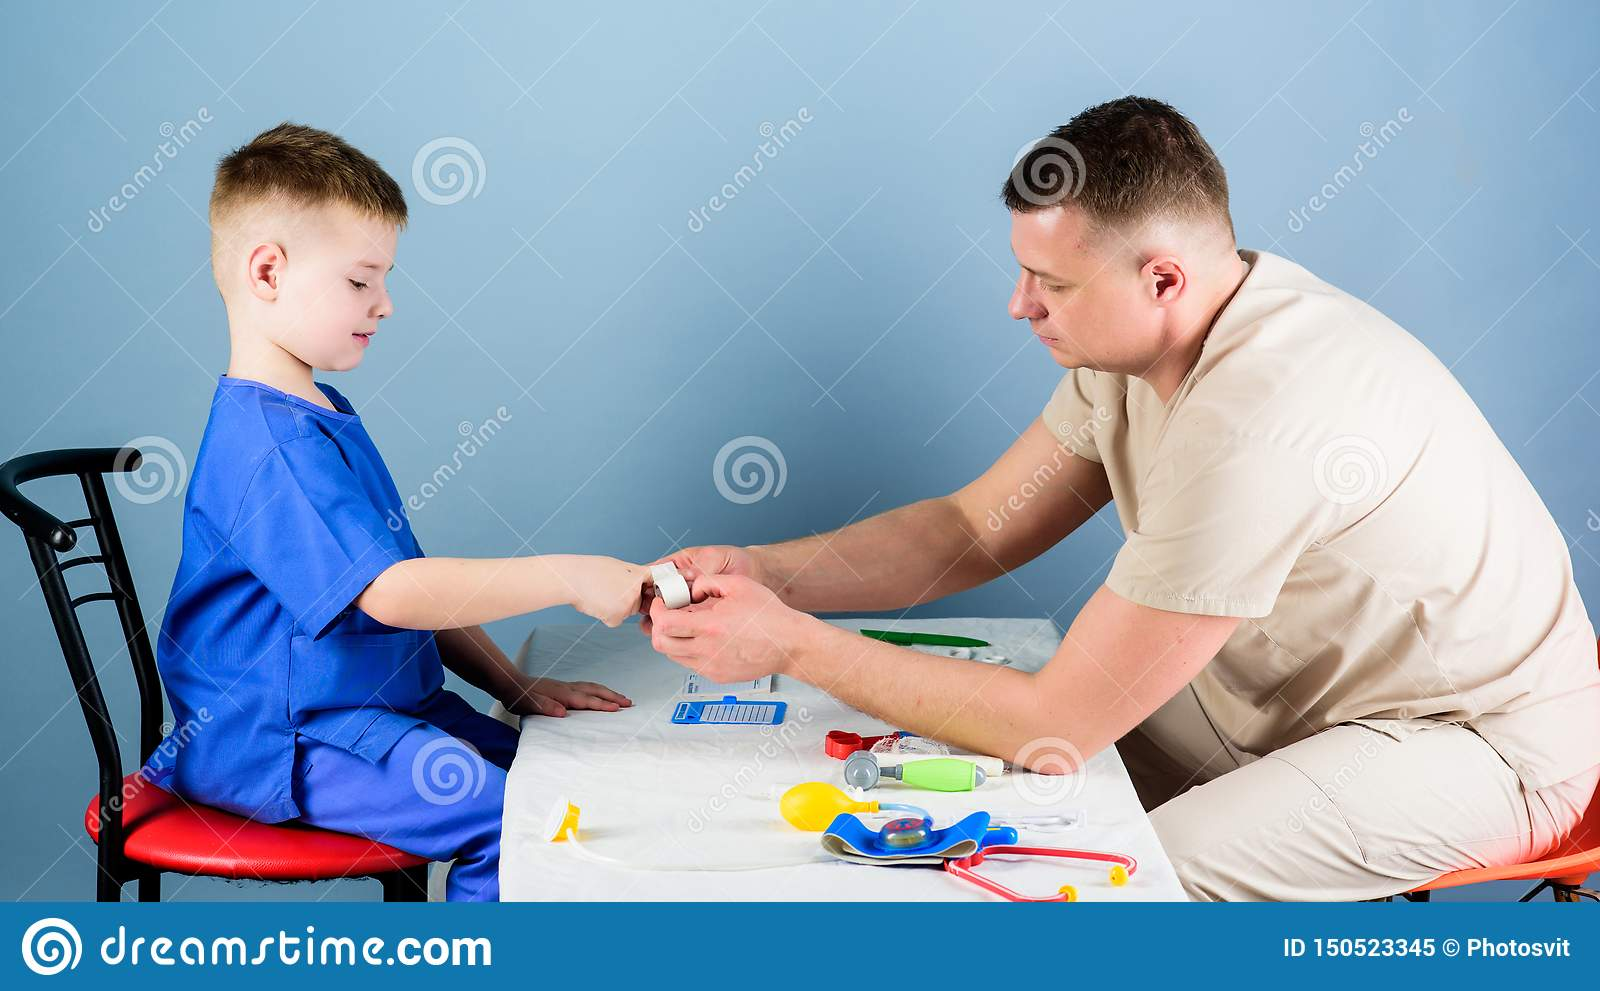 Medicine and health. small boy with dad play. pediatrician intern. nurse laboratory assistant. happy child with father